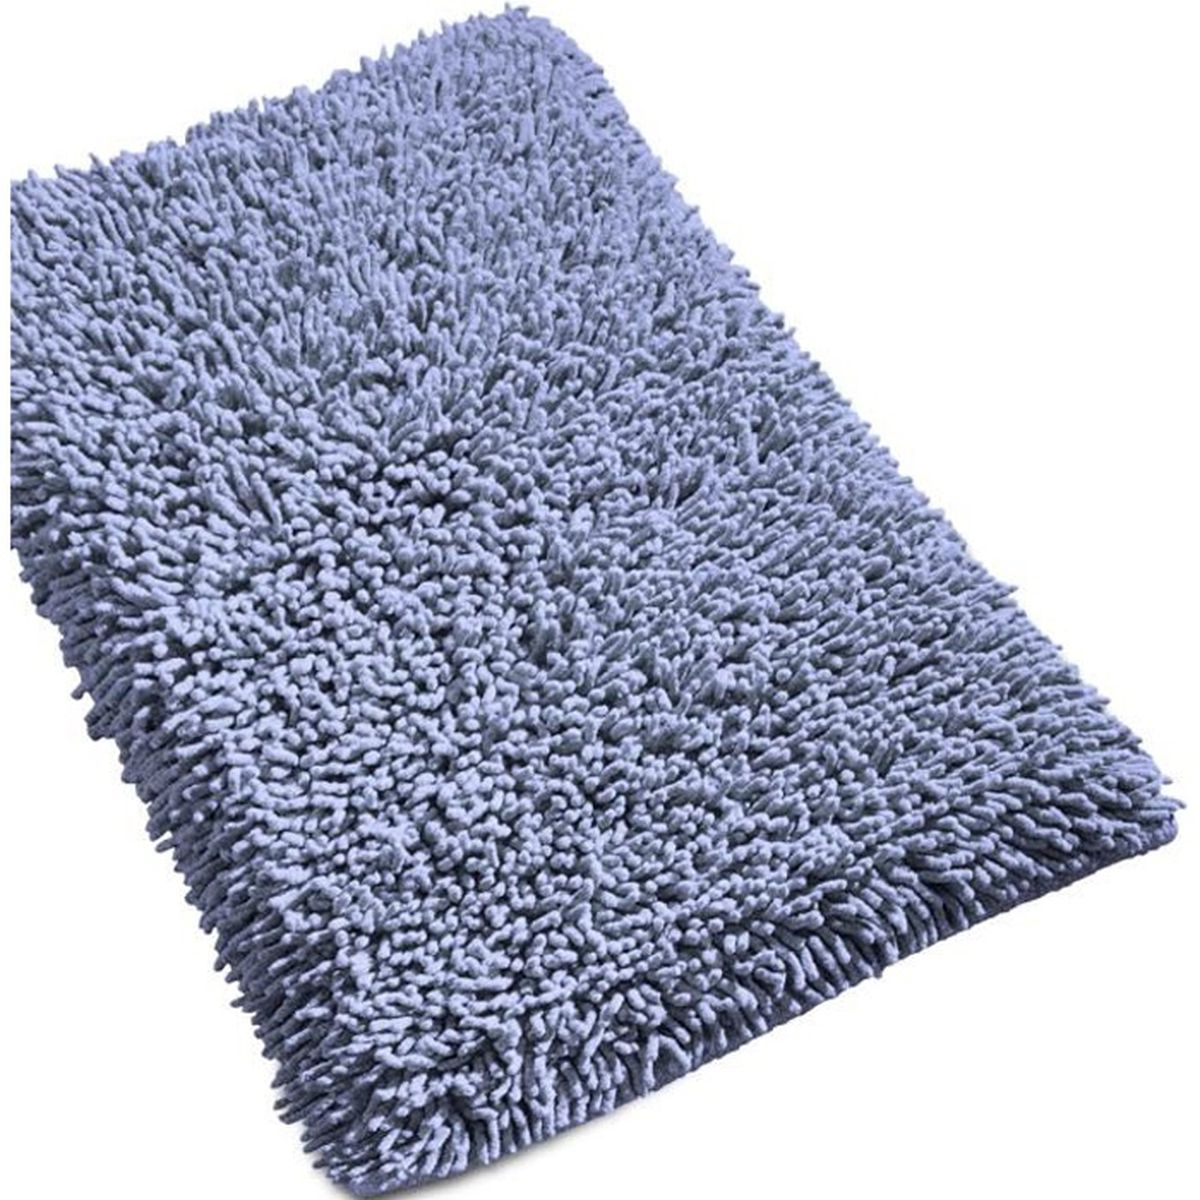 tapis de bain castorama beau tapis de salle de bain castorama photola with tapis de bain. Black Bedroom Furniture Sets. Home Design Ideas